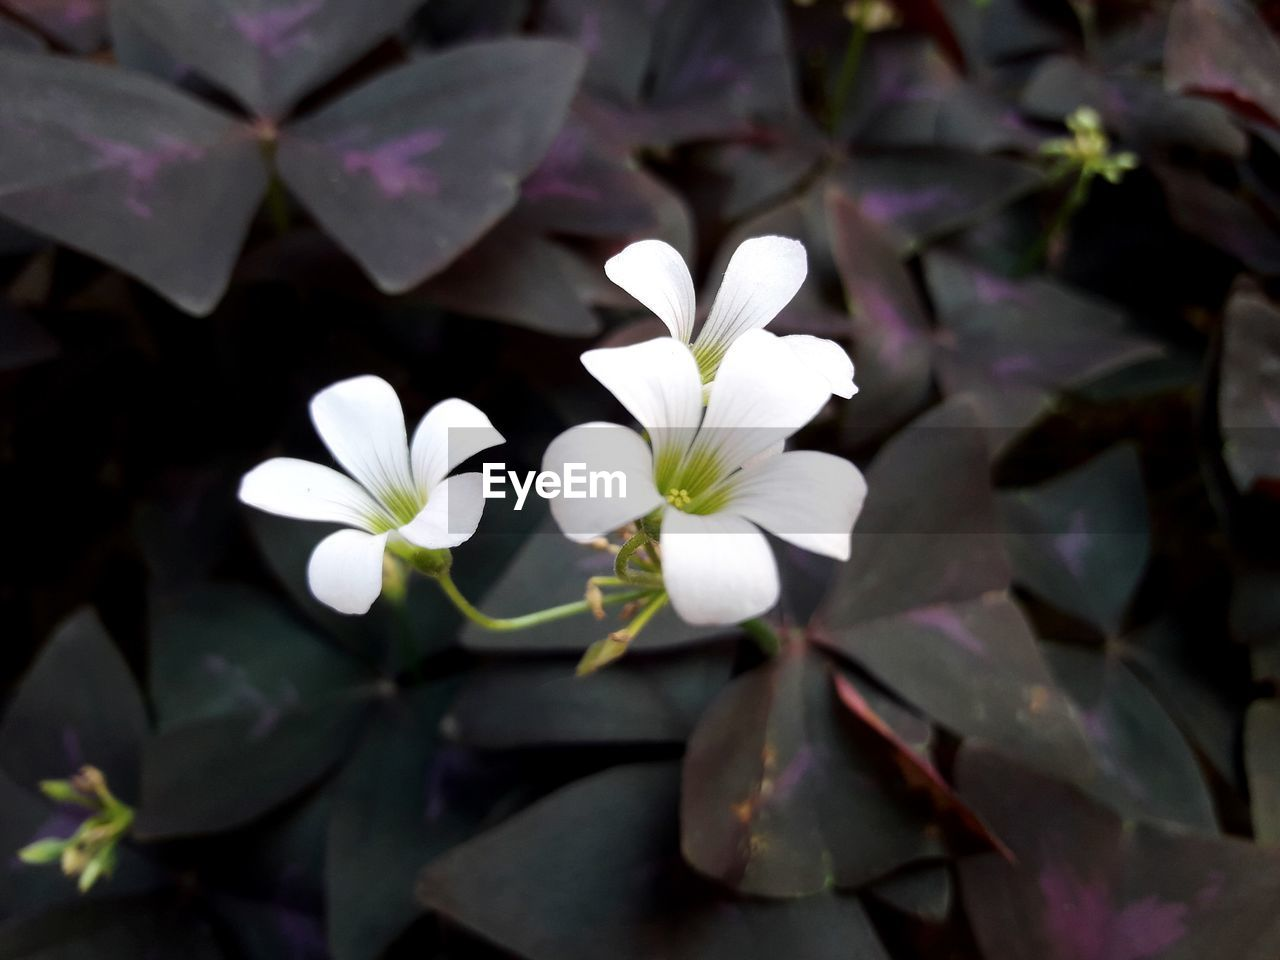 flowering plant, plant, growth, flower, beauty in nature, petal, fragility, freshness, vulnerability, close-up, flower head, white color, inflorescence, plant part, no people, leaf, nature, day, focus on foreground, botany, pollen, purple